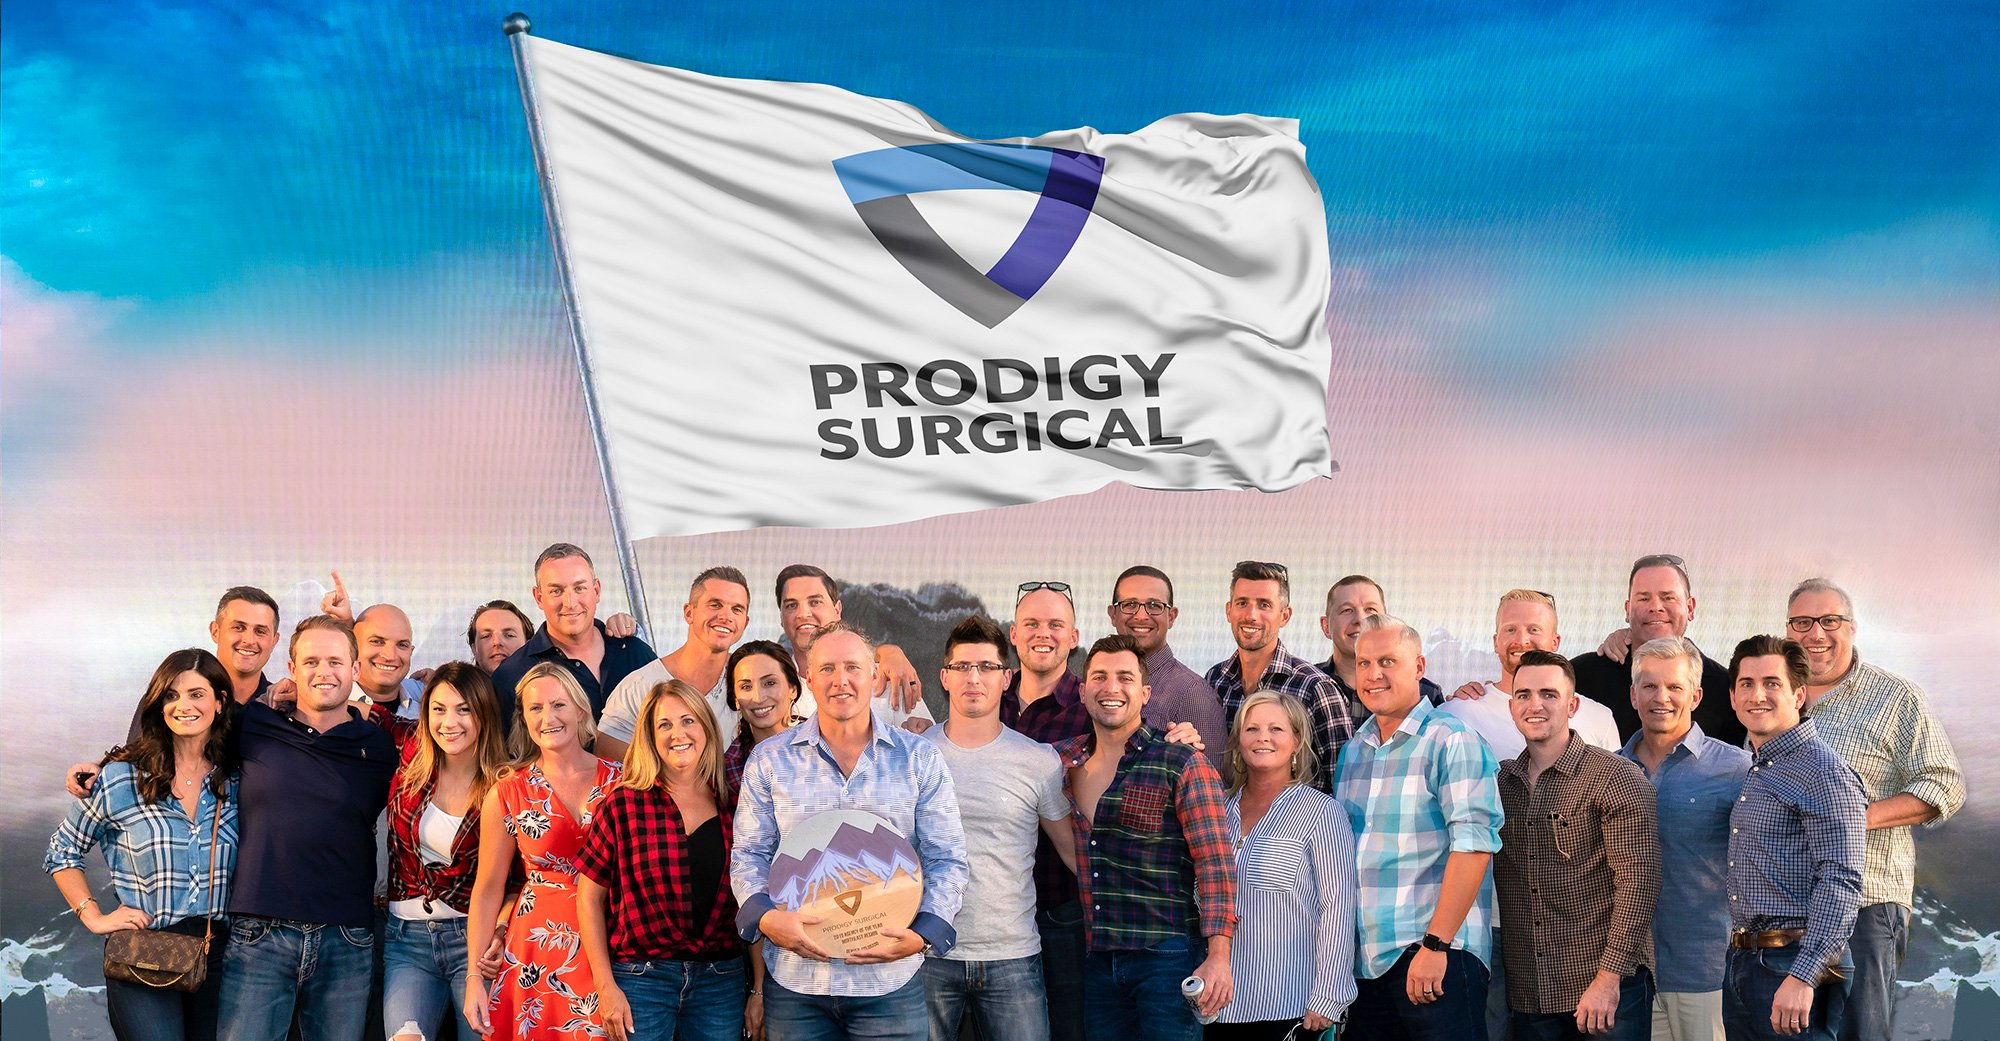 Group picture of Prodigy Surgical team members.